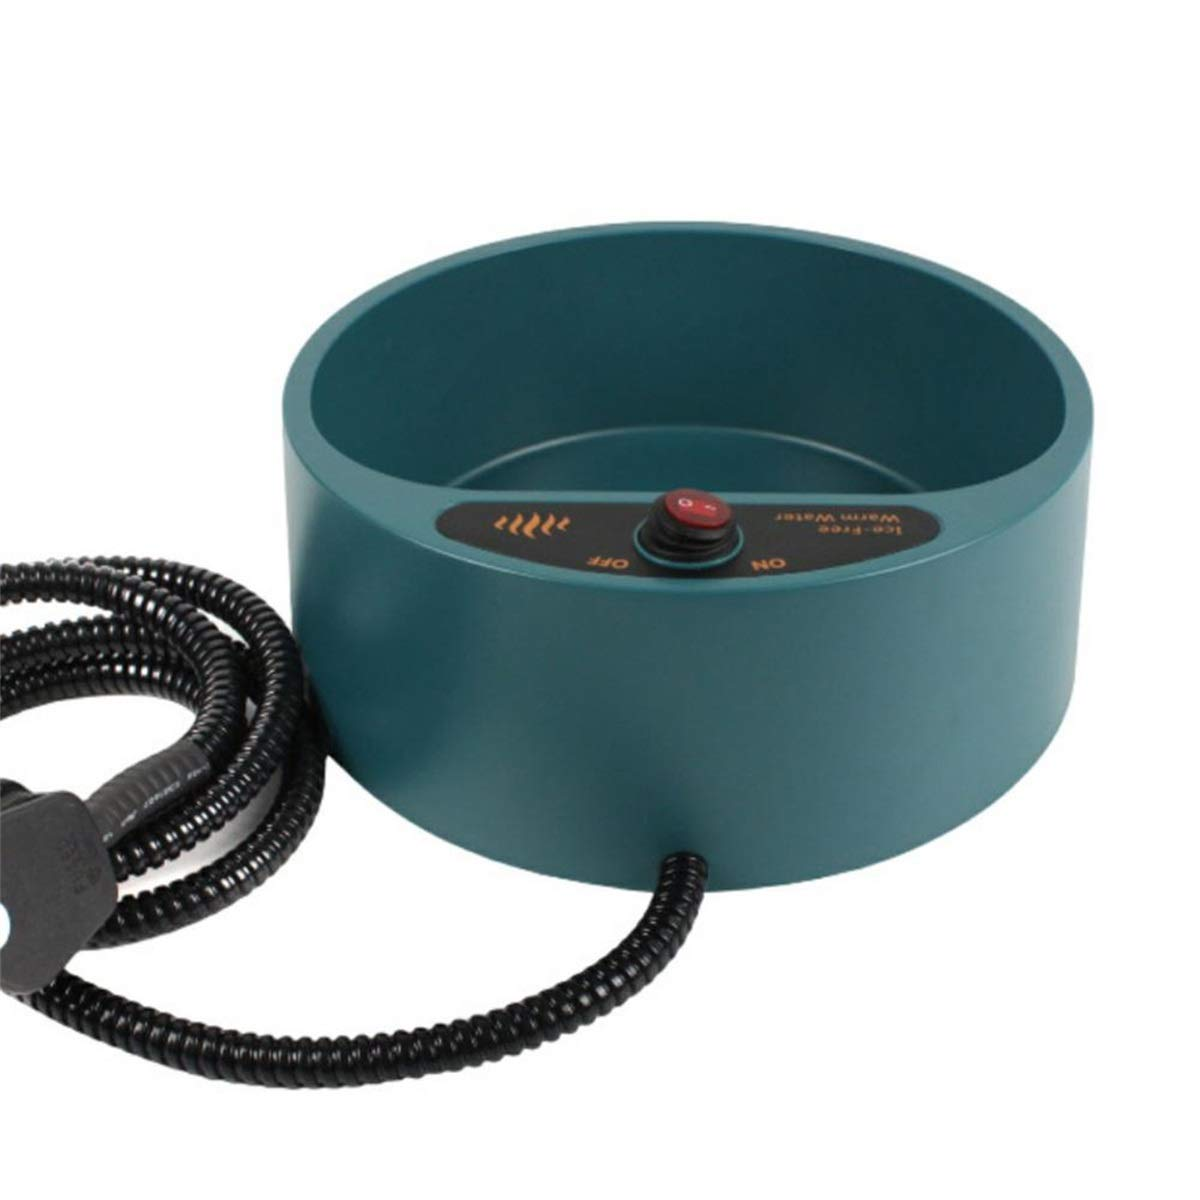 bluee EU Plug bluee EU Plug Wholesale Dog Cat Pet Electronic Heated Water Bowl Dish Outdoor Thermal Water Feeder Heater Safe Feed Cage Bowl Container bluee EU Plug